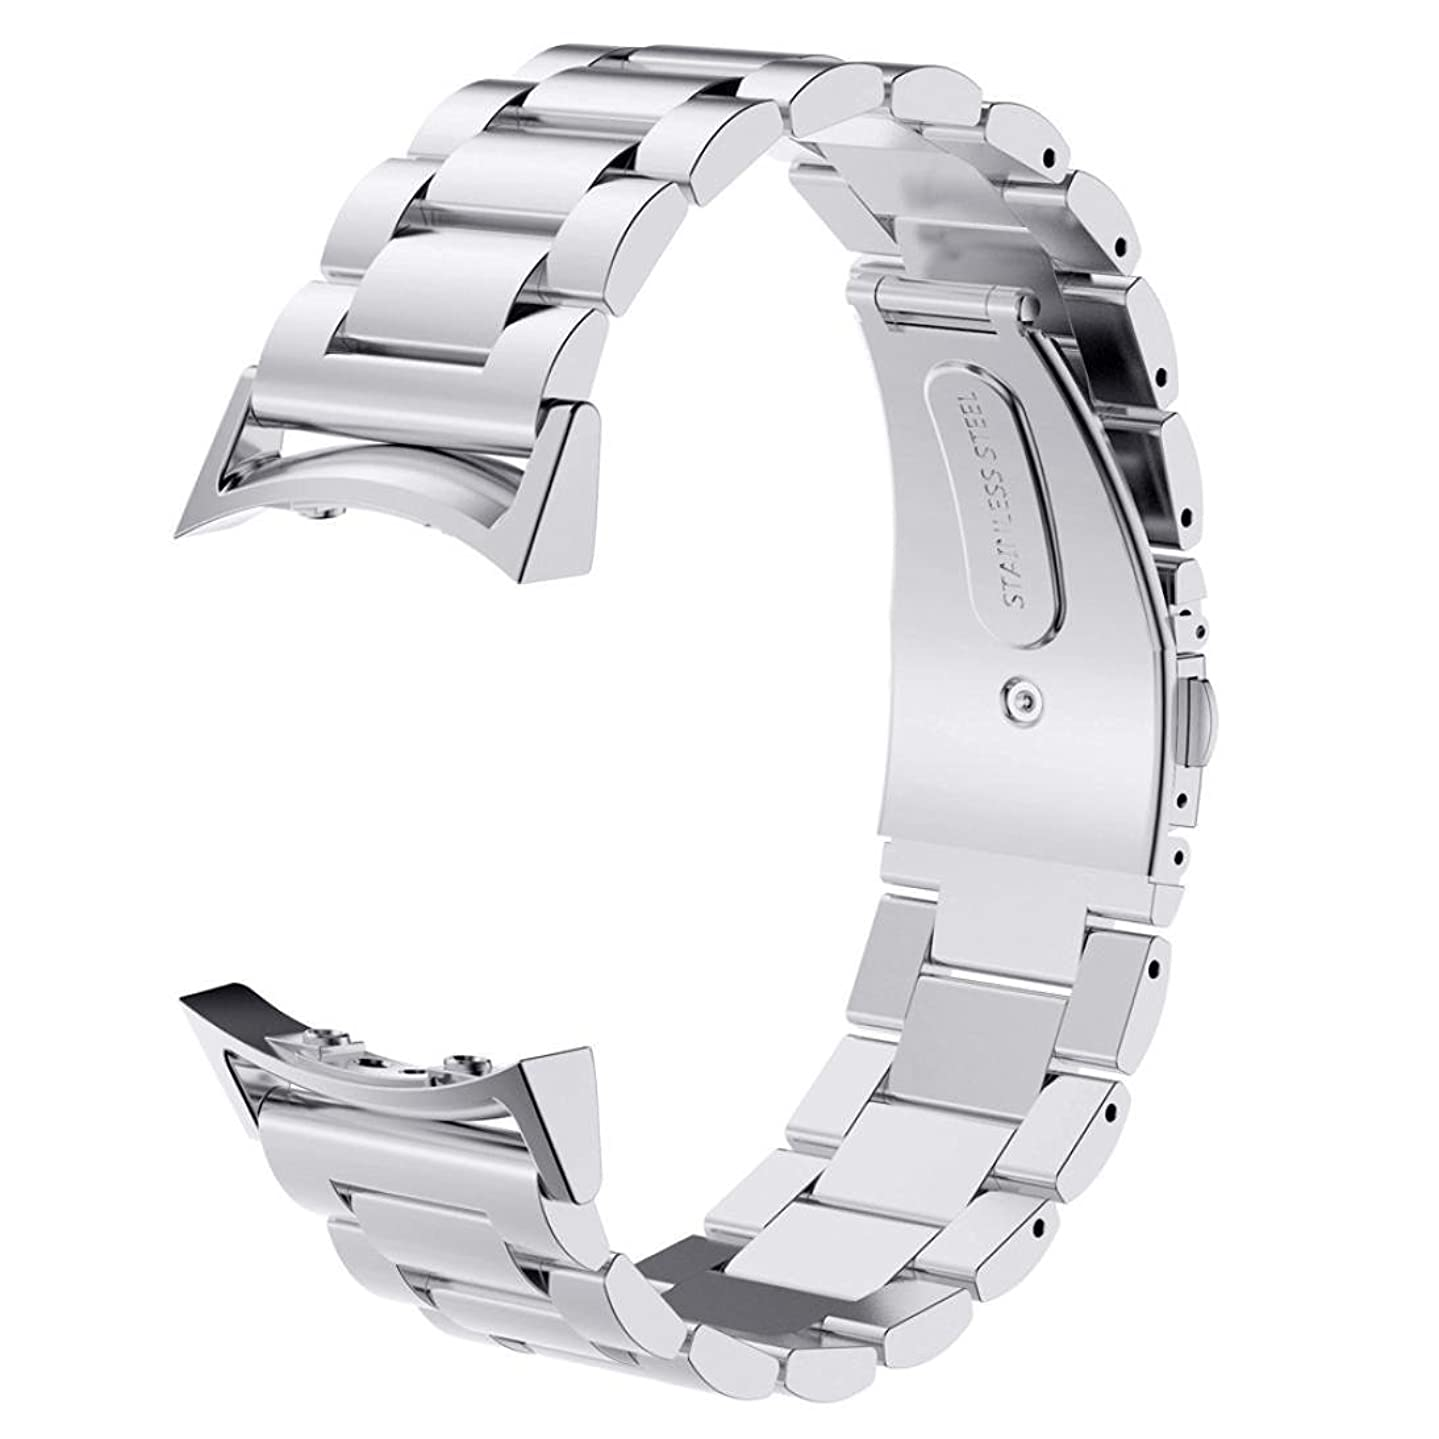 Gear S2 Bands V-Moro Solid Stainless Steel Metal Replacement Band with Adapters for Samsung Gear S2 Smart Watch (Metal Silver)